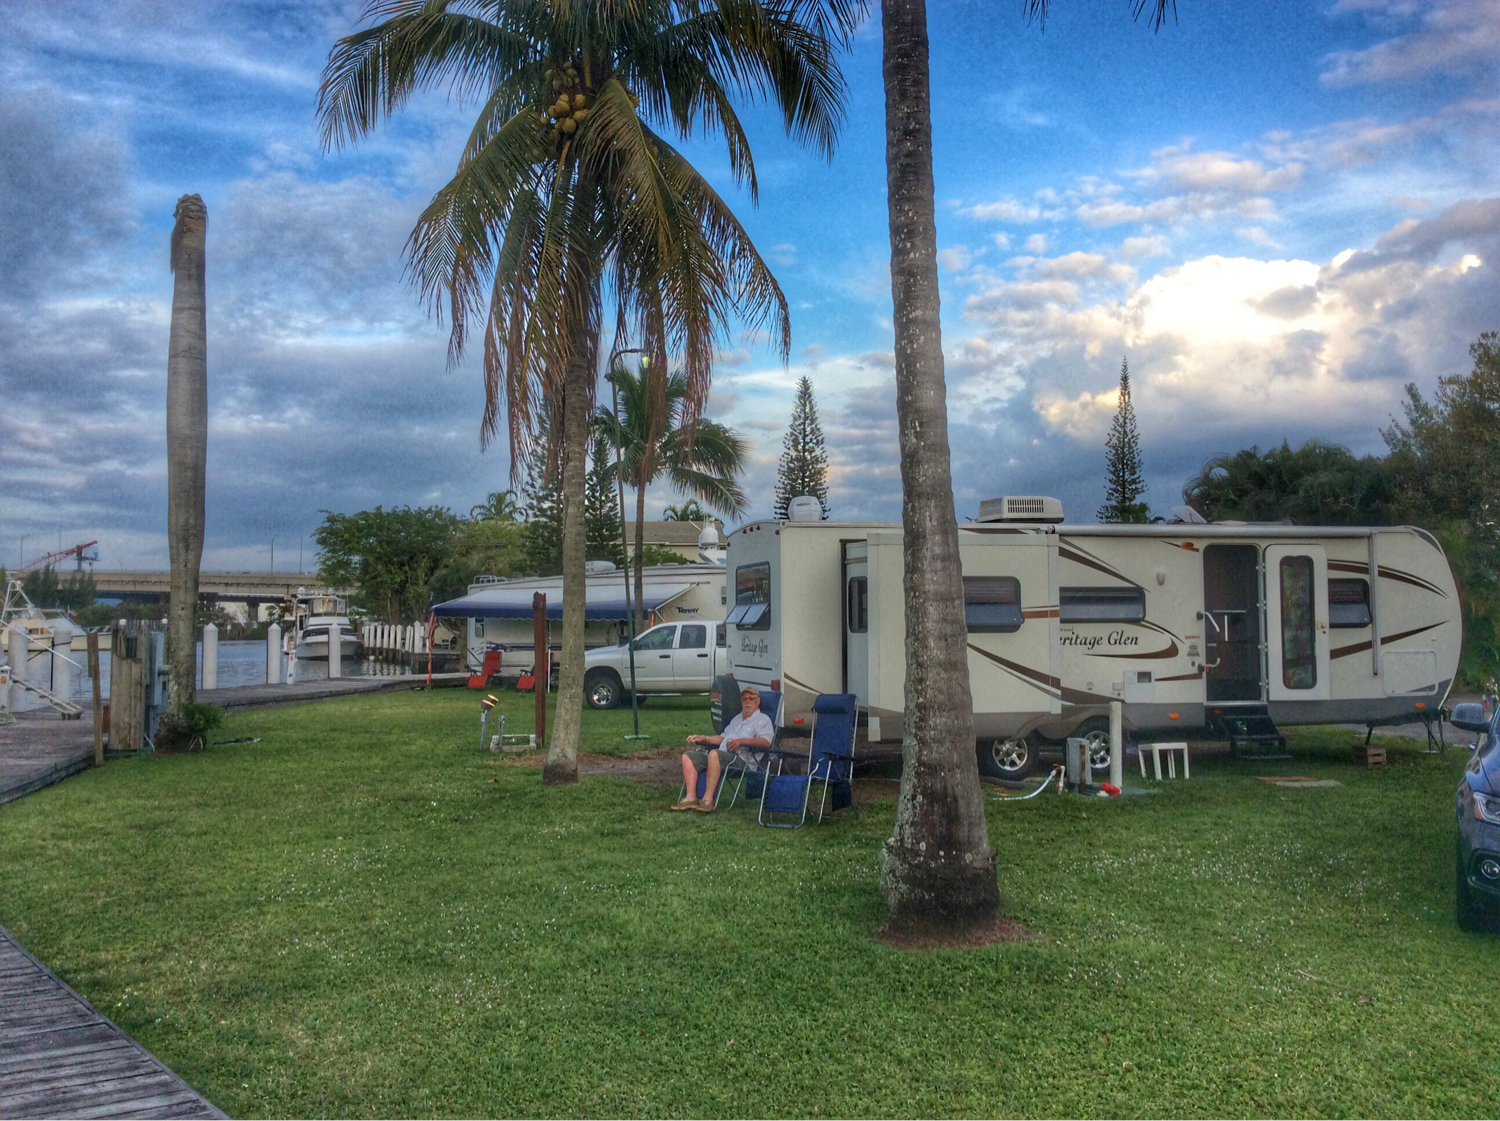 Fort Lauderdale Rv Parks Reviews And Photos Rvparking Com